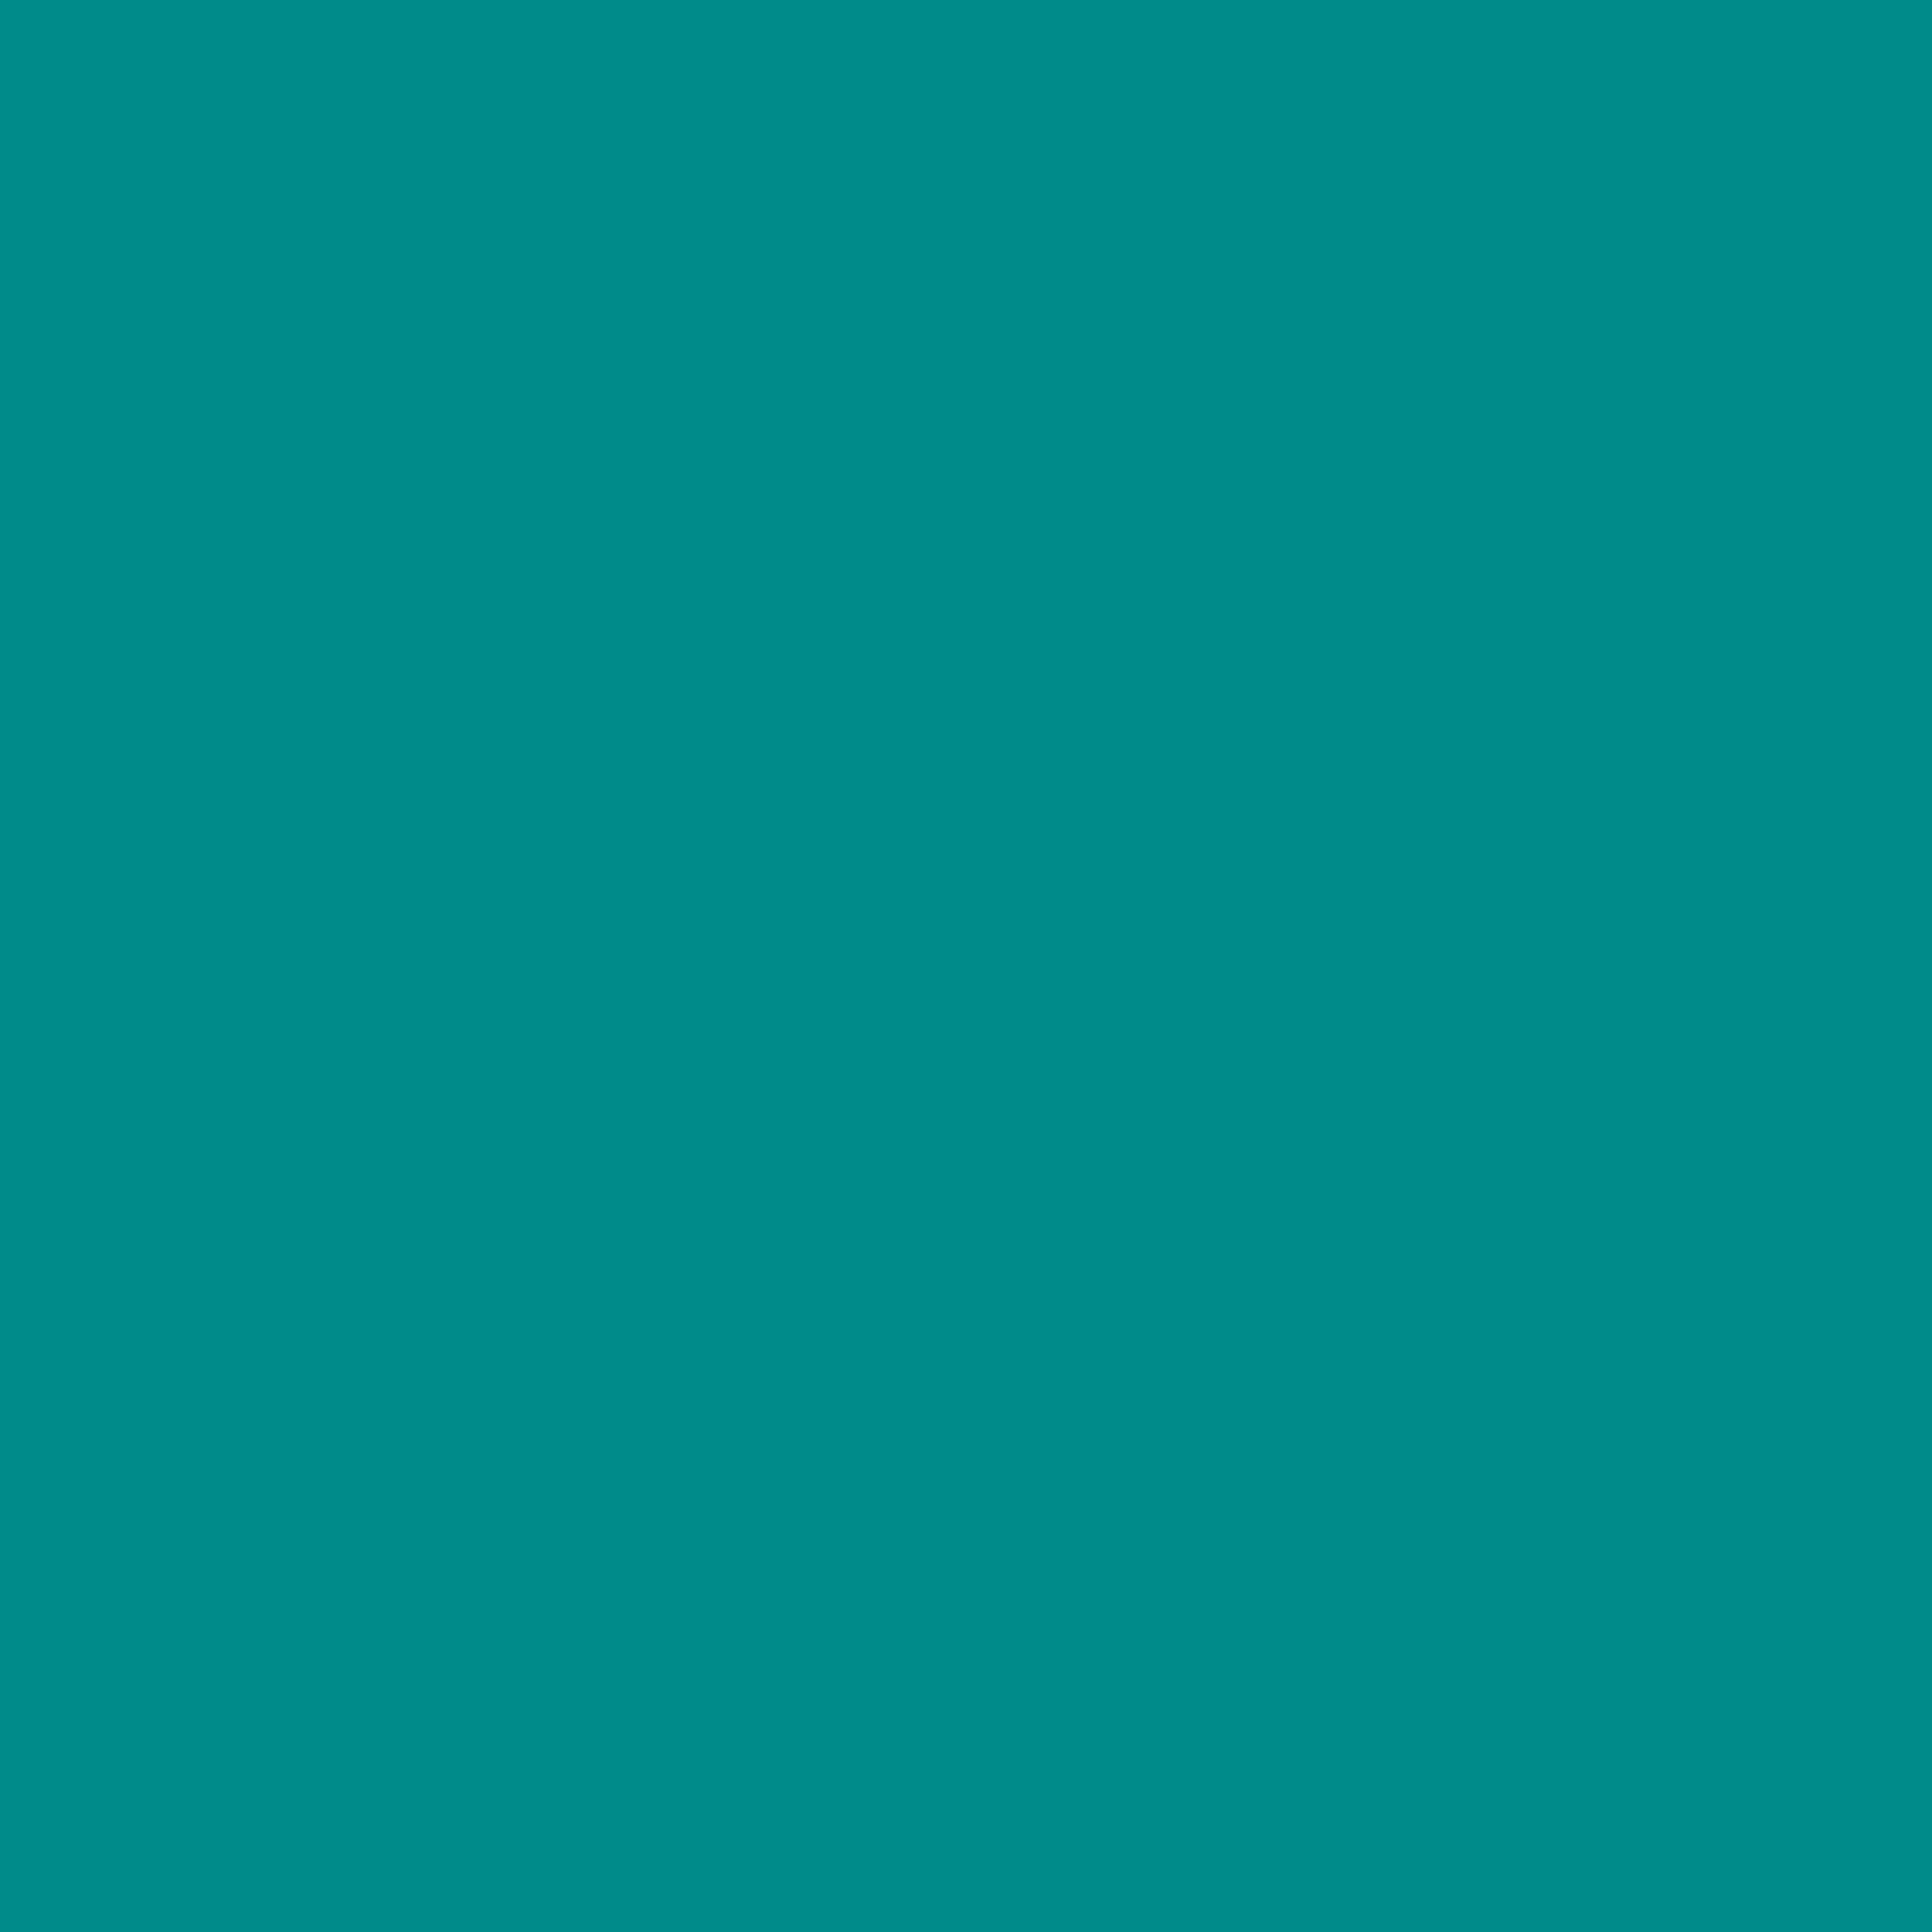 3600x3600 Dark Cyan Solid Color Background